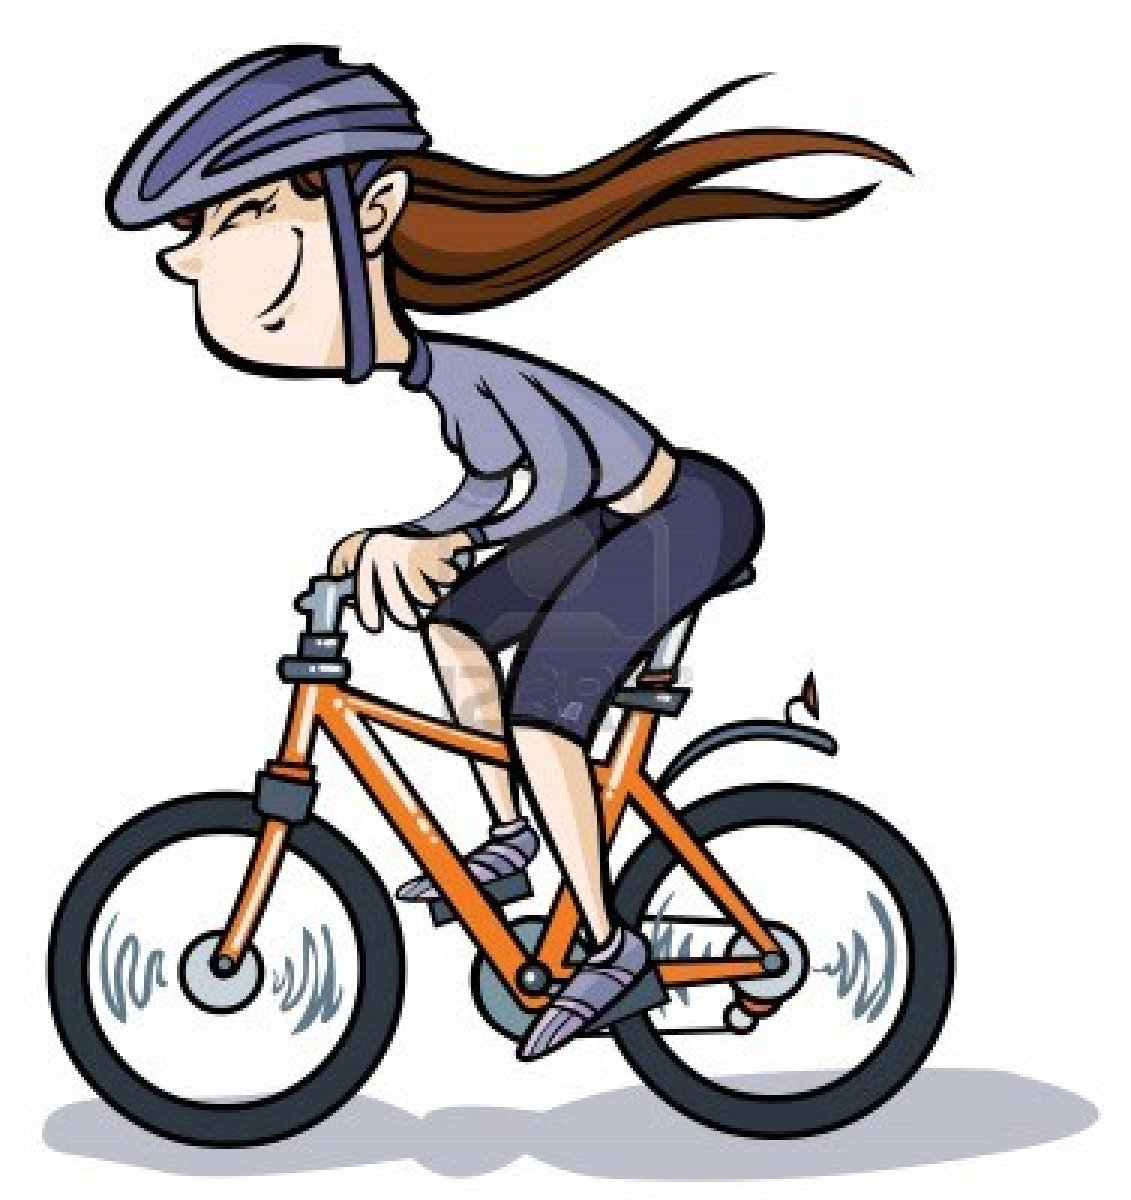 Clipart cycle graphic transparent library Free Bicycle Clip Art Pictures - Clipartix graphic transparent library